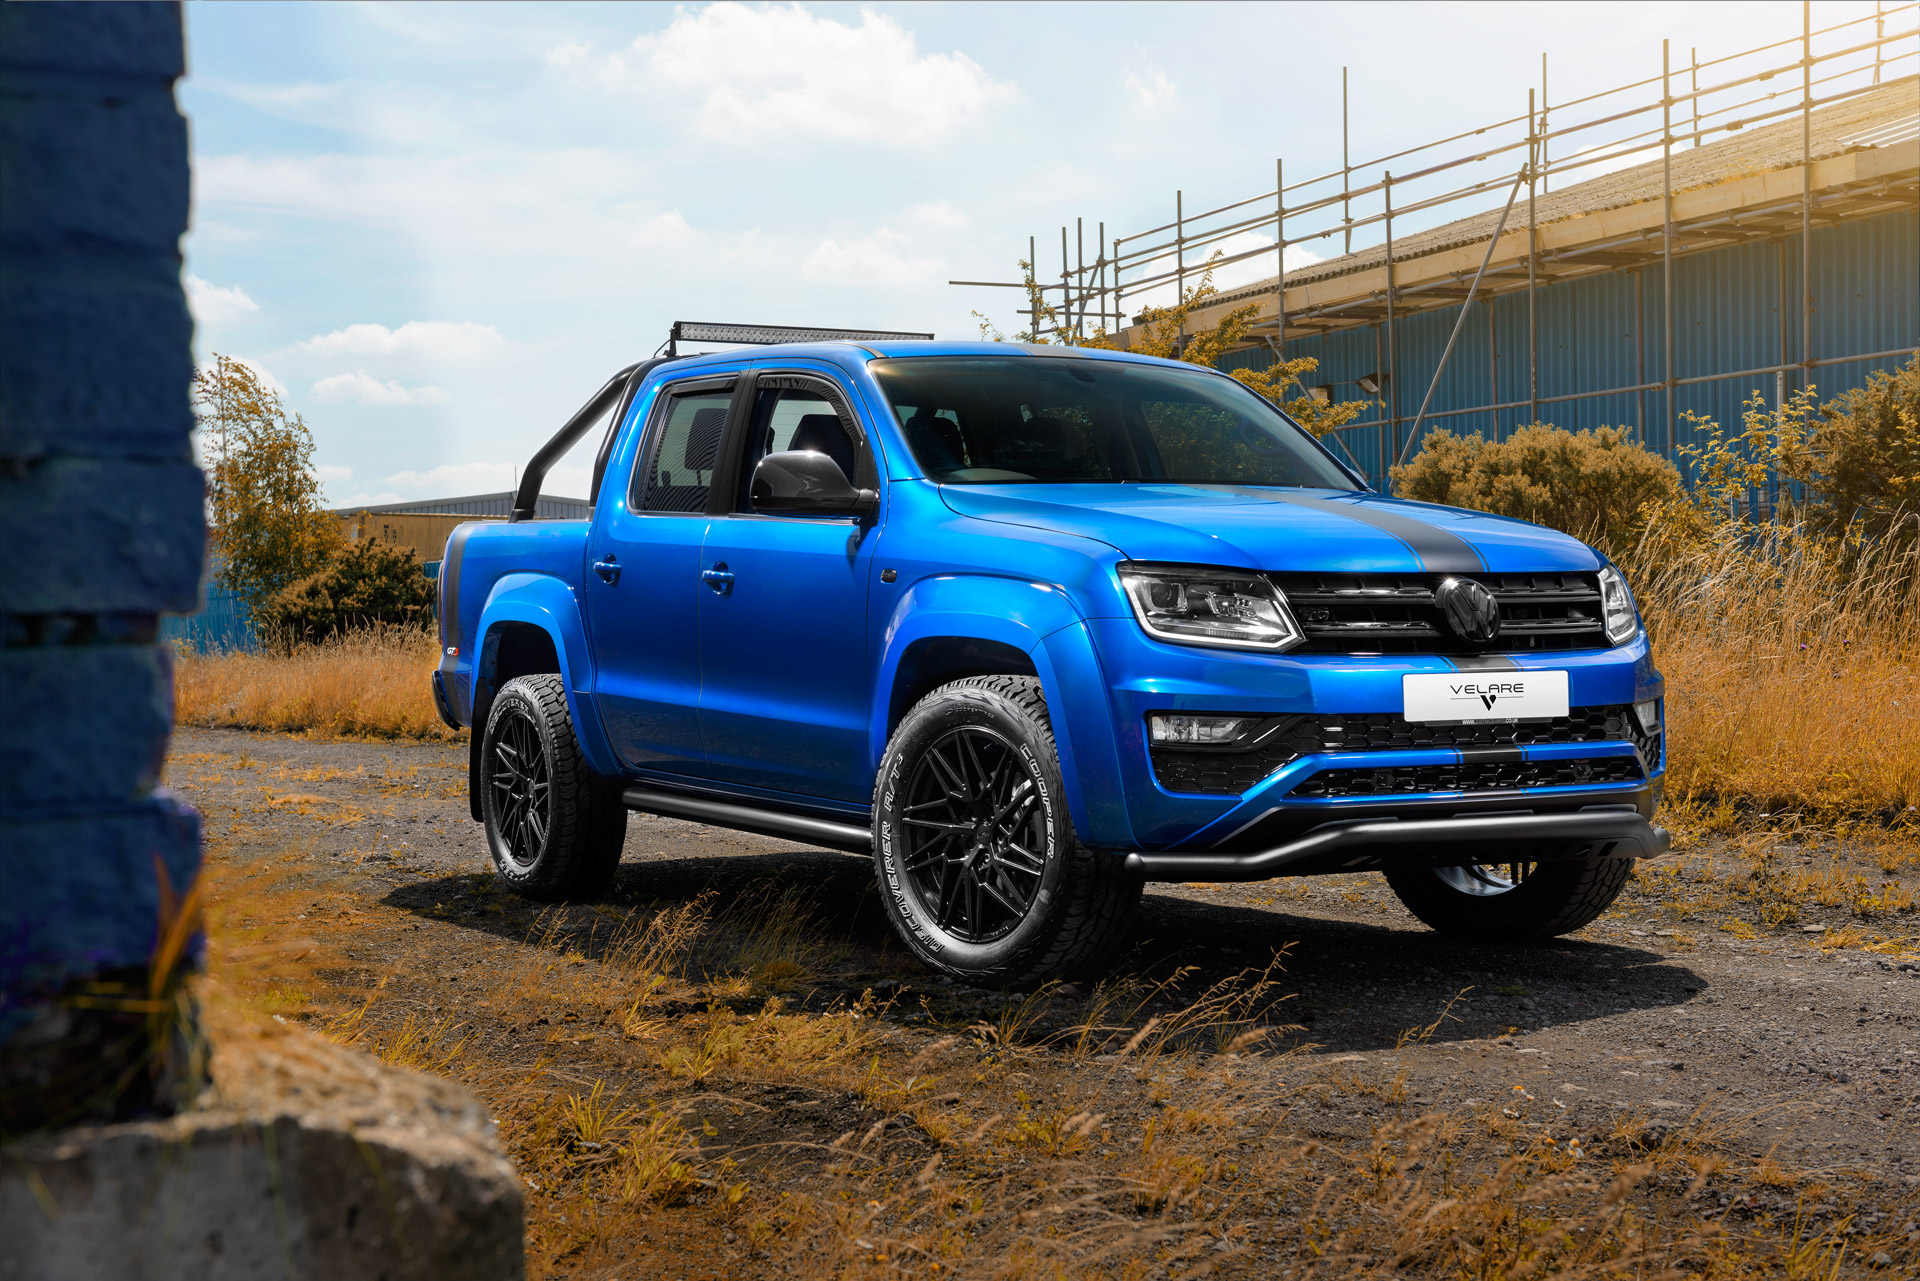 volkswagen-amaroc-4x4-pickup-wipdesigns-automotive-photographer-1